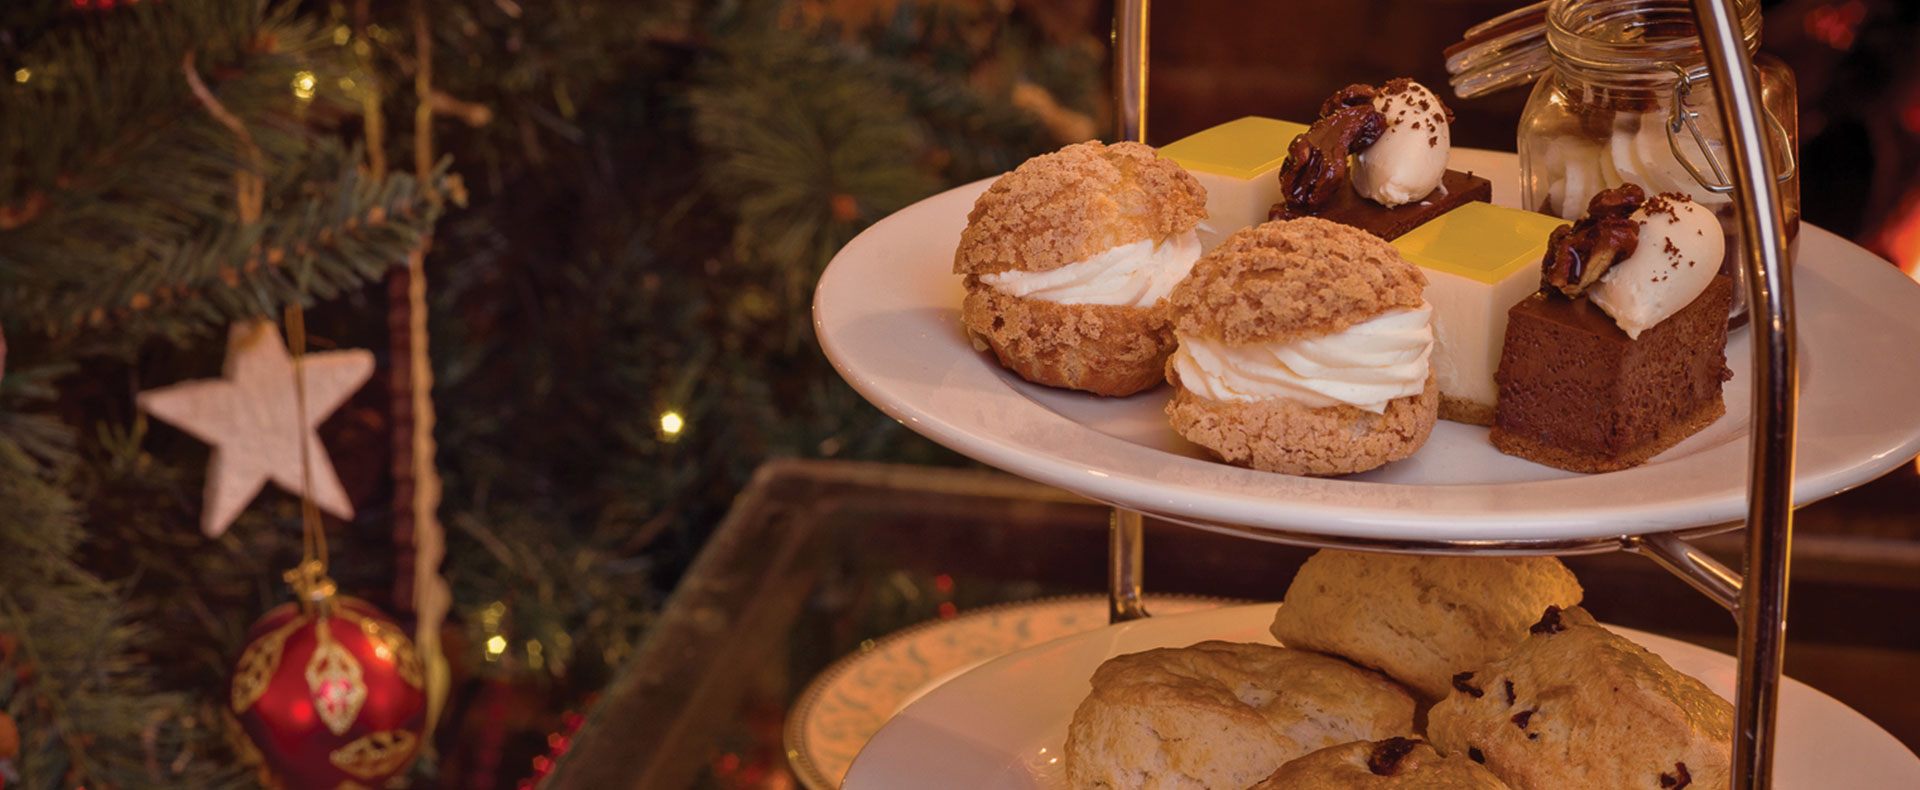 Yuletide Afternoon Tea | Montagu Arms Hotel